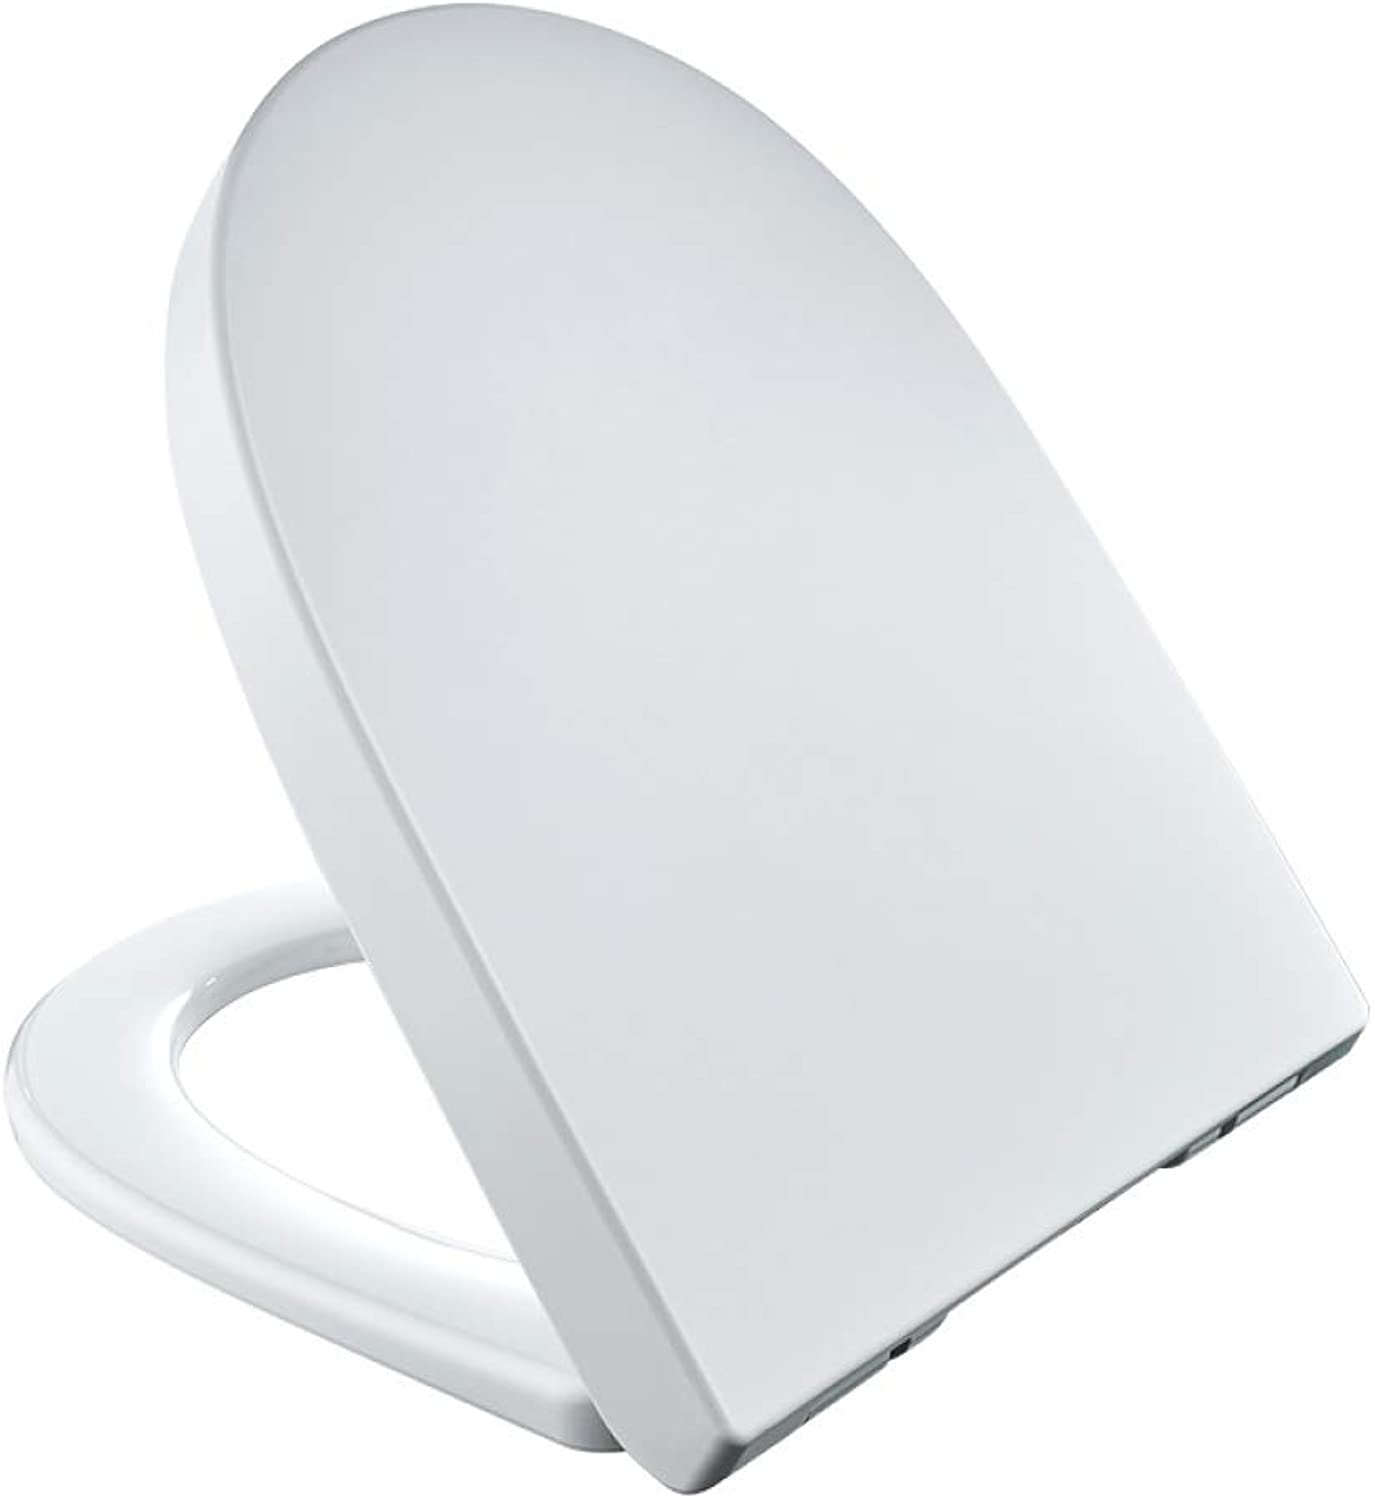 S-graceful Toilet Lid With Silent Slow Down Ultra Resistant Top Fixed U Shape Toilet Seat Cover For Family Use Toilet Seat,White-40.847.4cm36.5cm